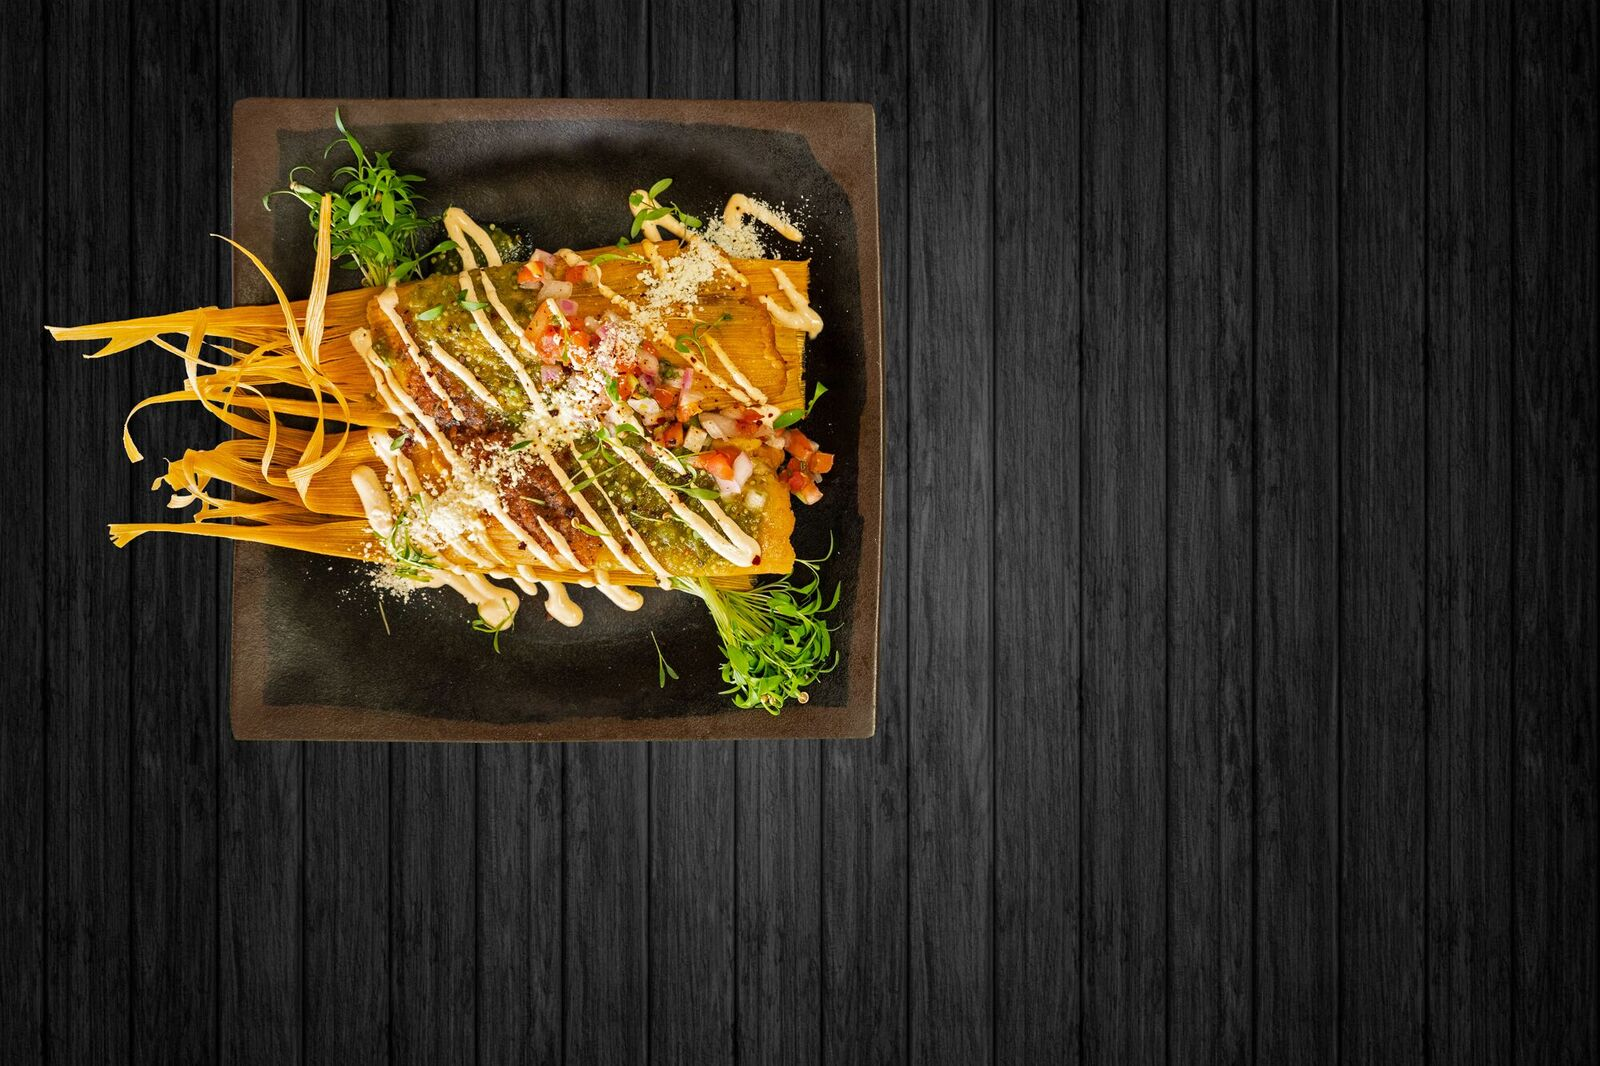 top shot of a menu item with Rico de gallo, Cotija cheese and cream sauce drizzled on top